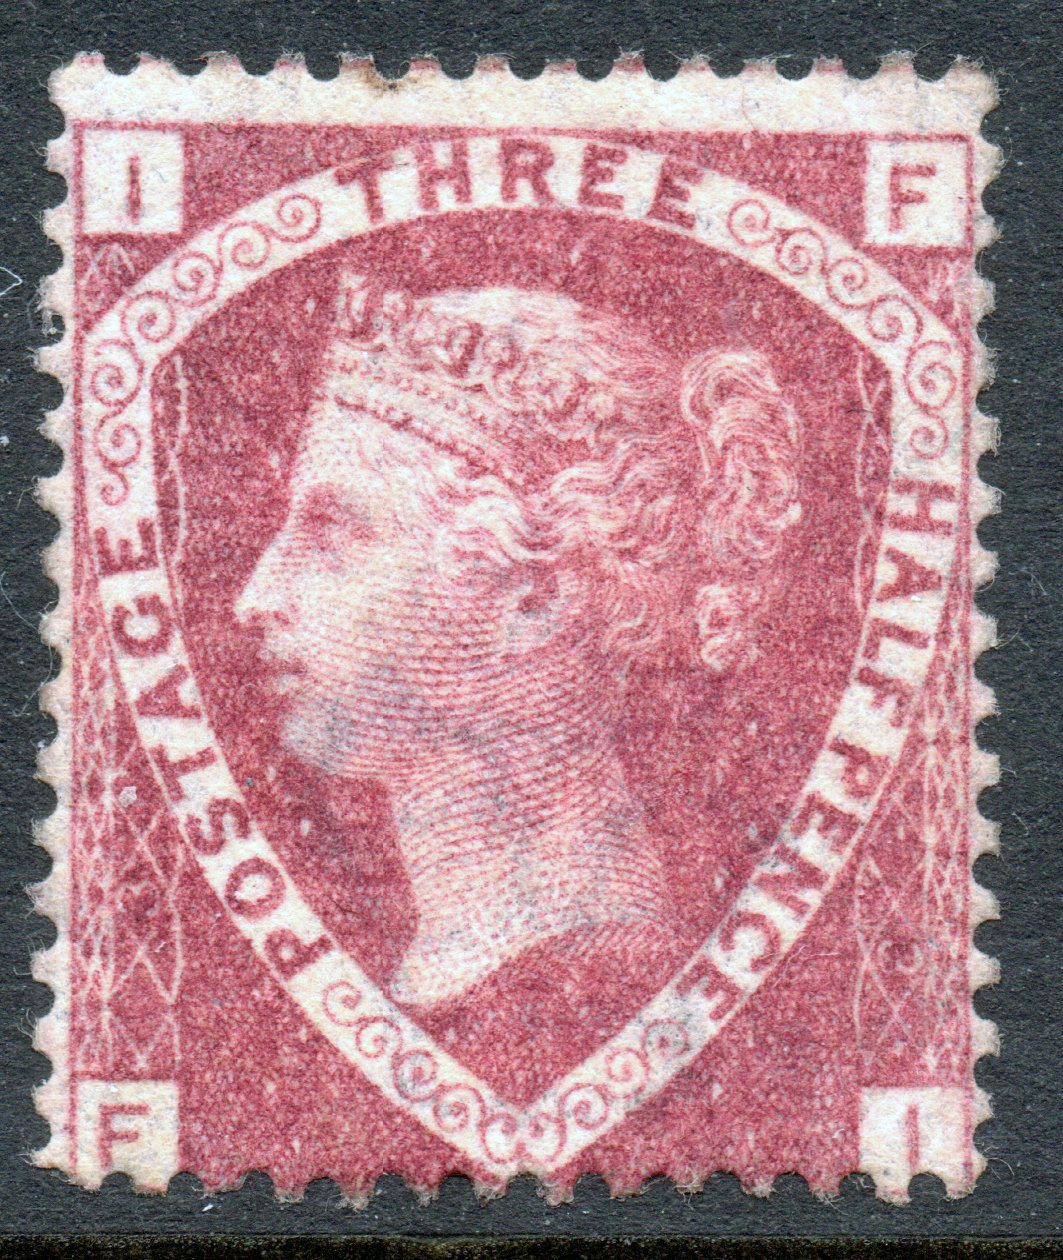 1870 1½d Lake-red Plate 3 Fresh Mint